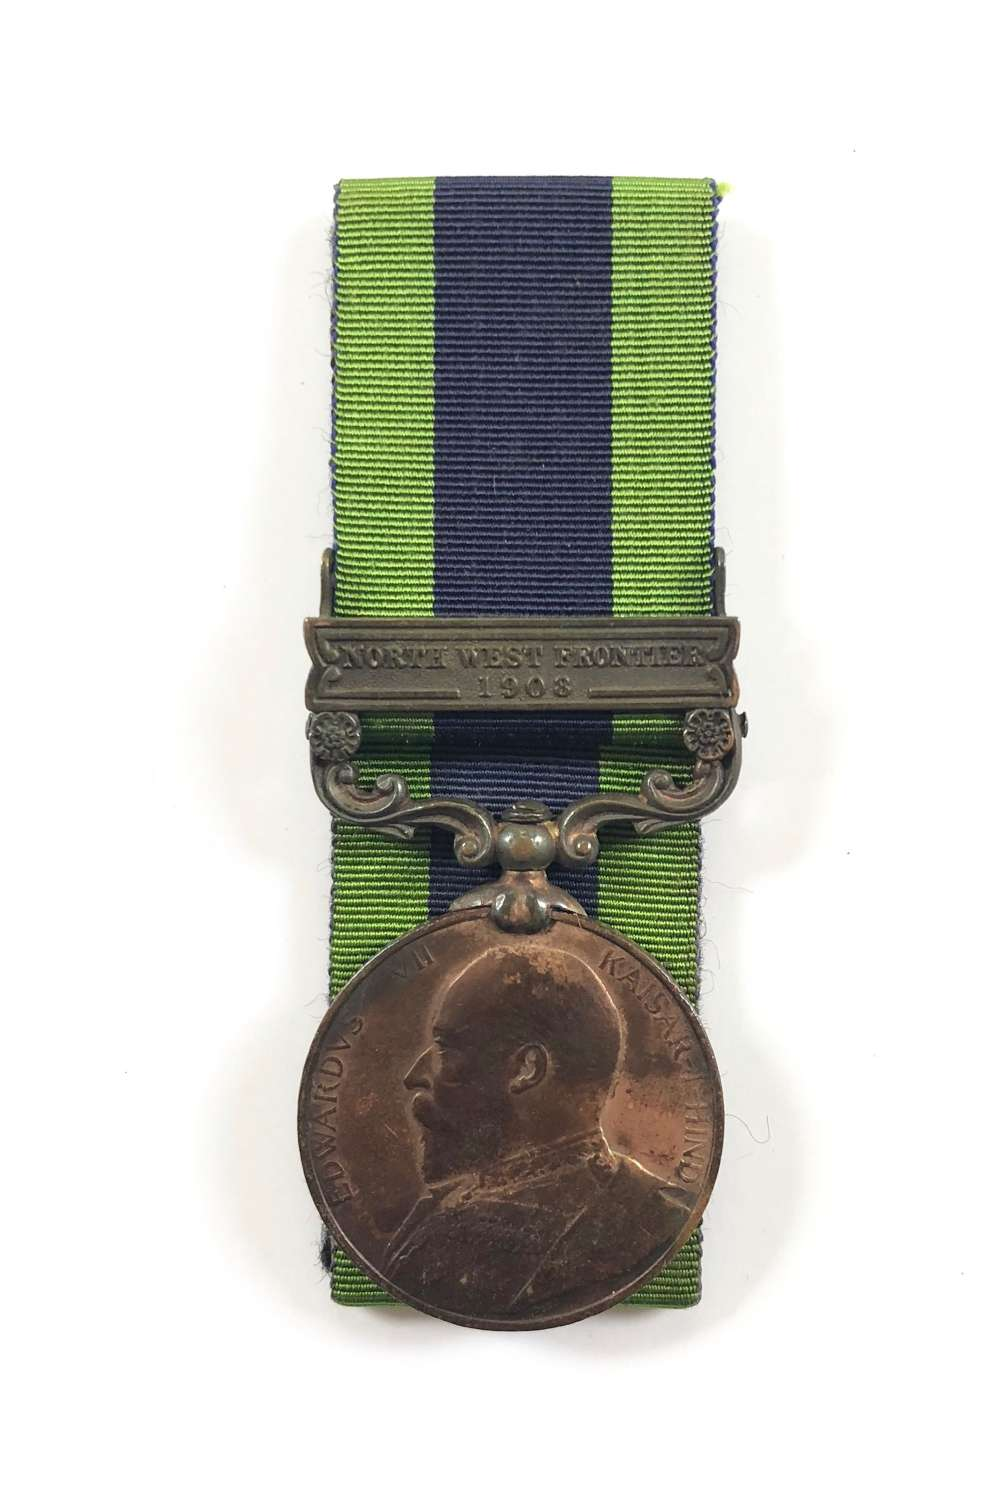 Army Bearer Corps Edward VII bronze India General Service Medal